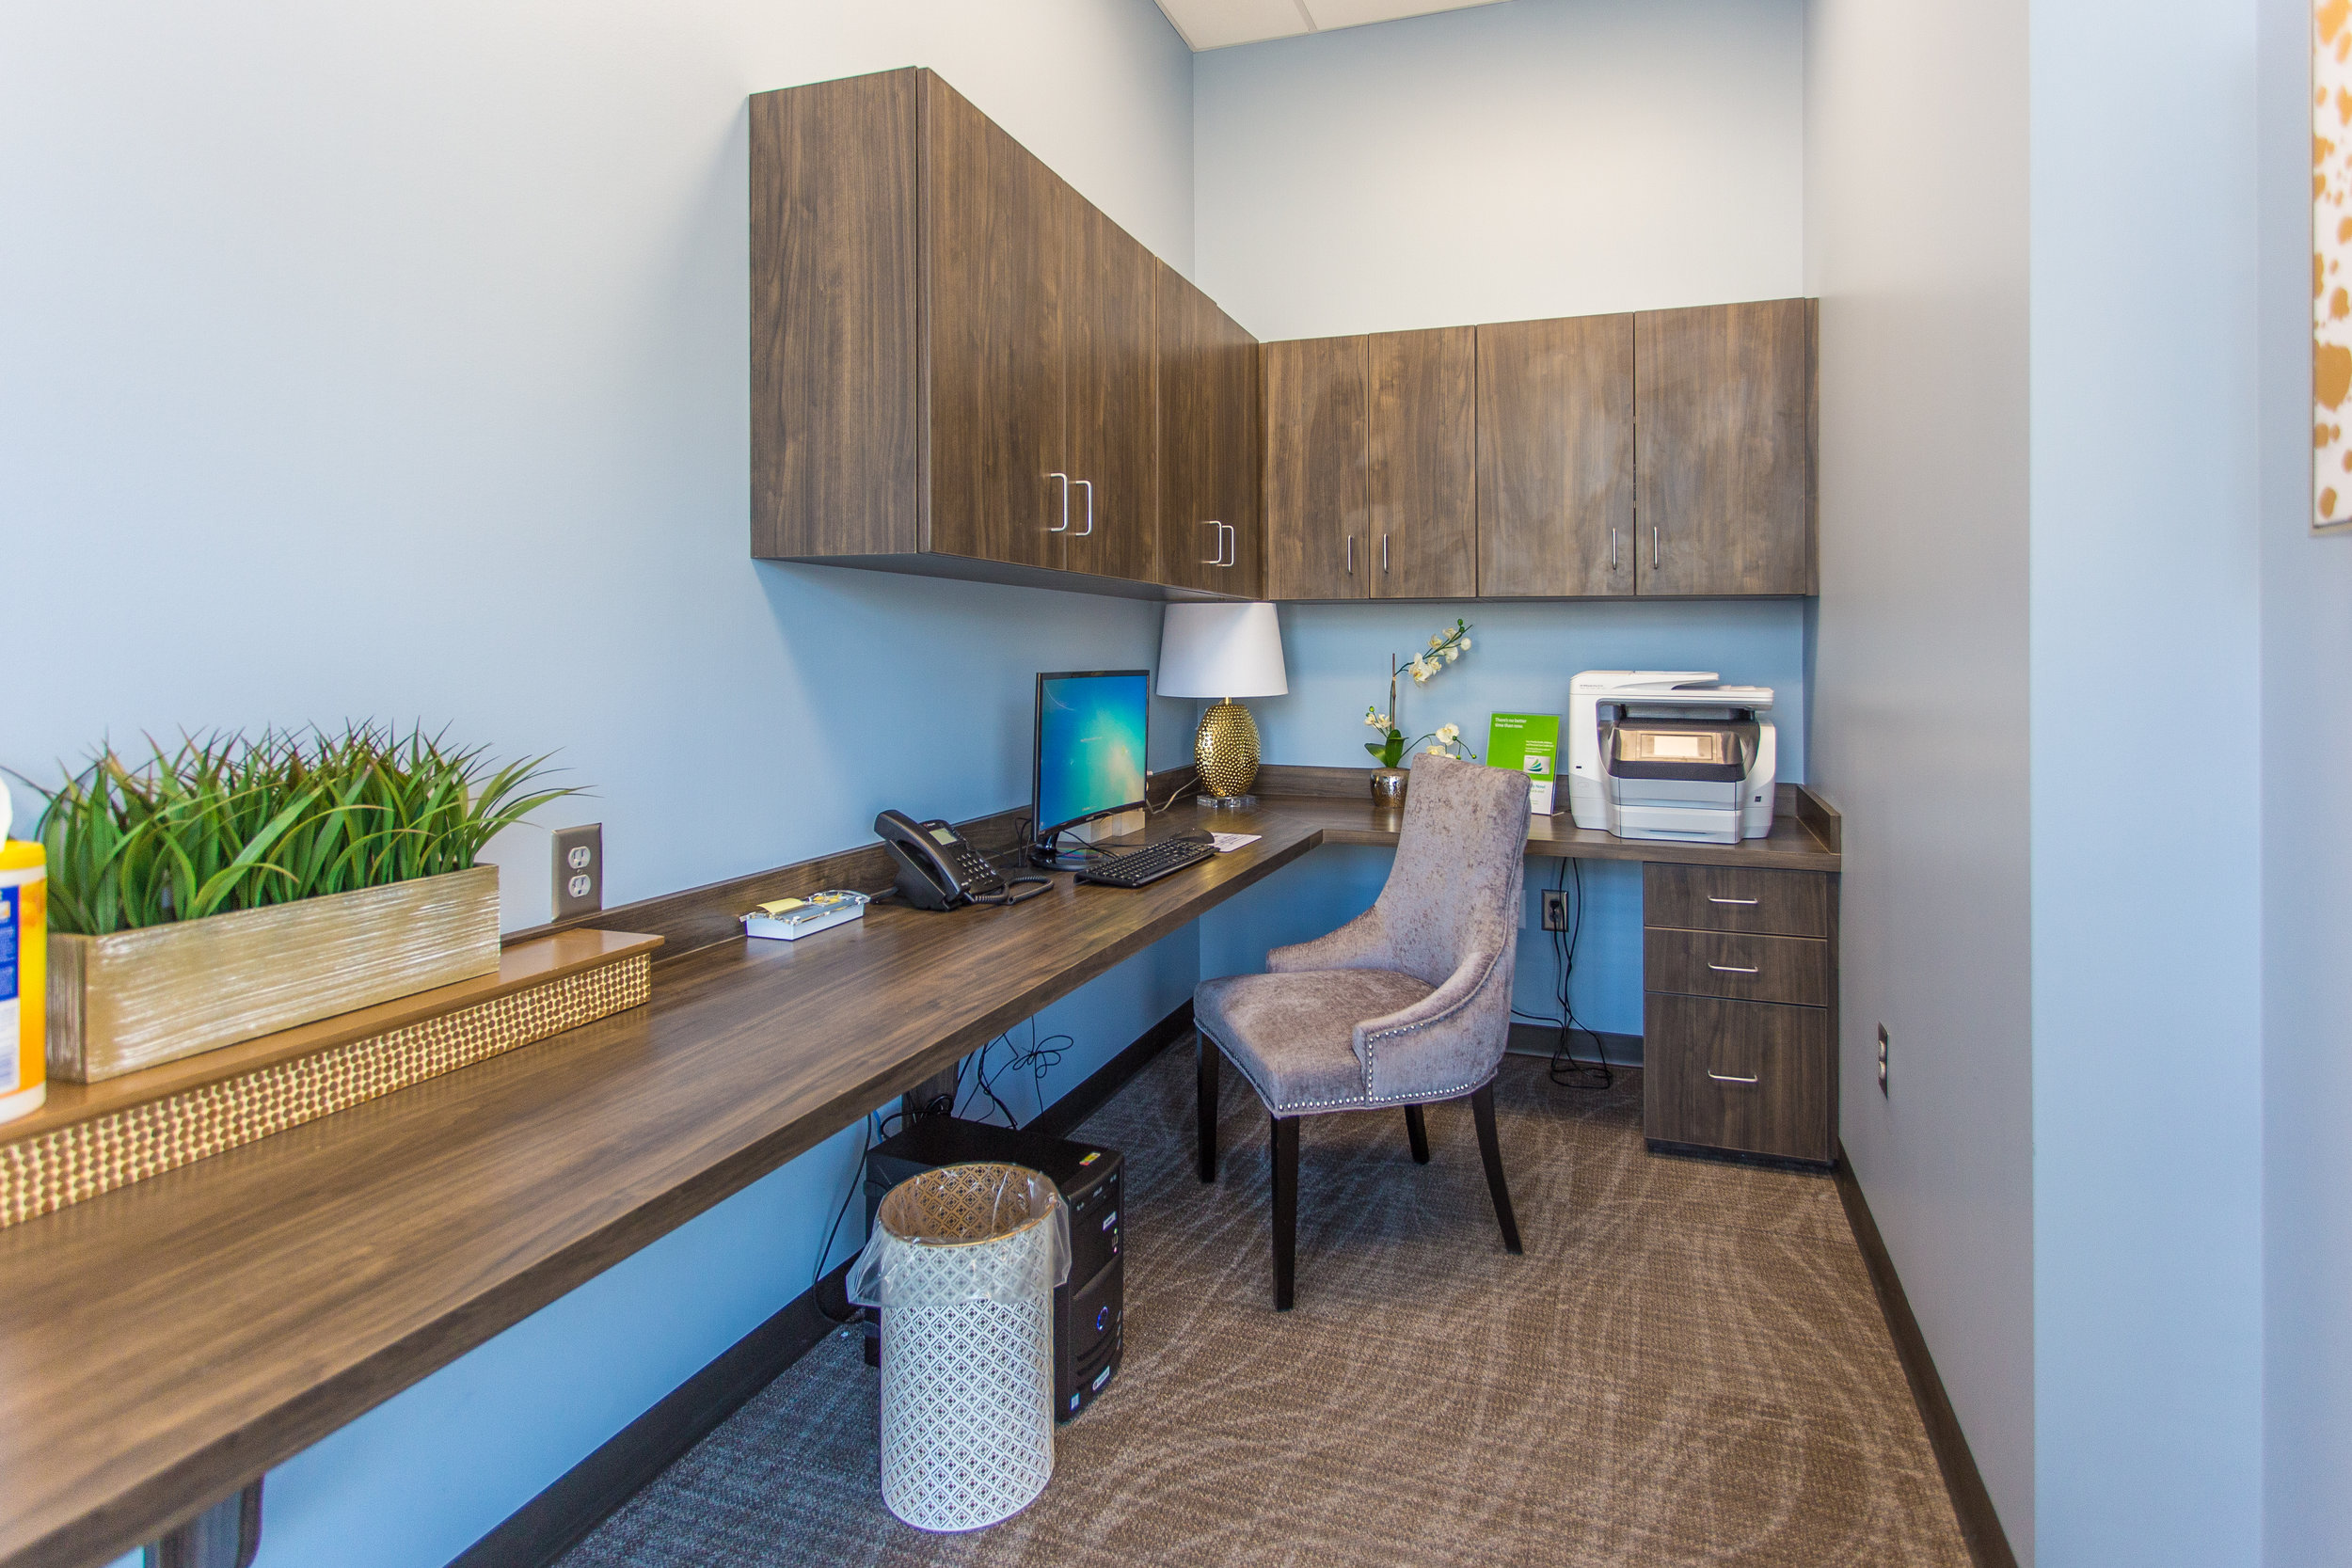 Separate office workspace for consults or employee use.